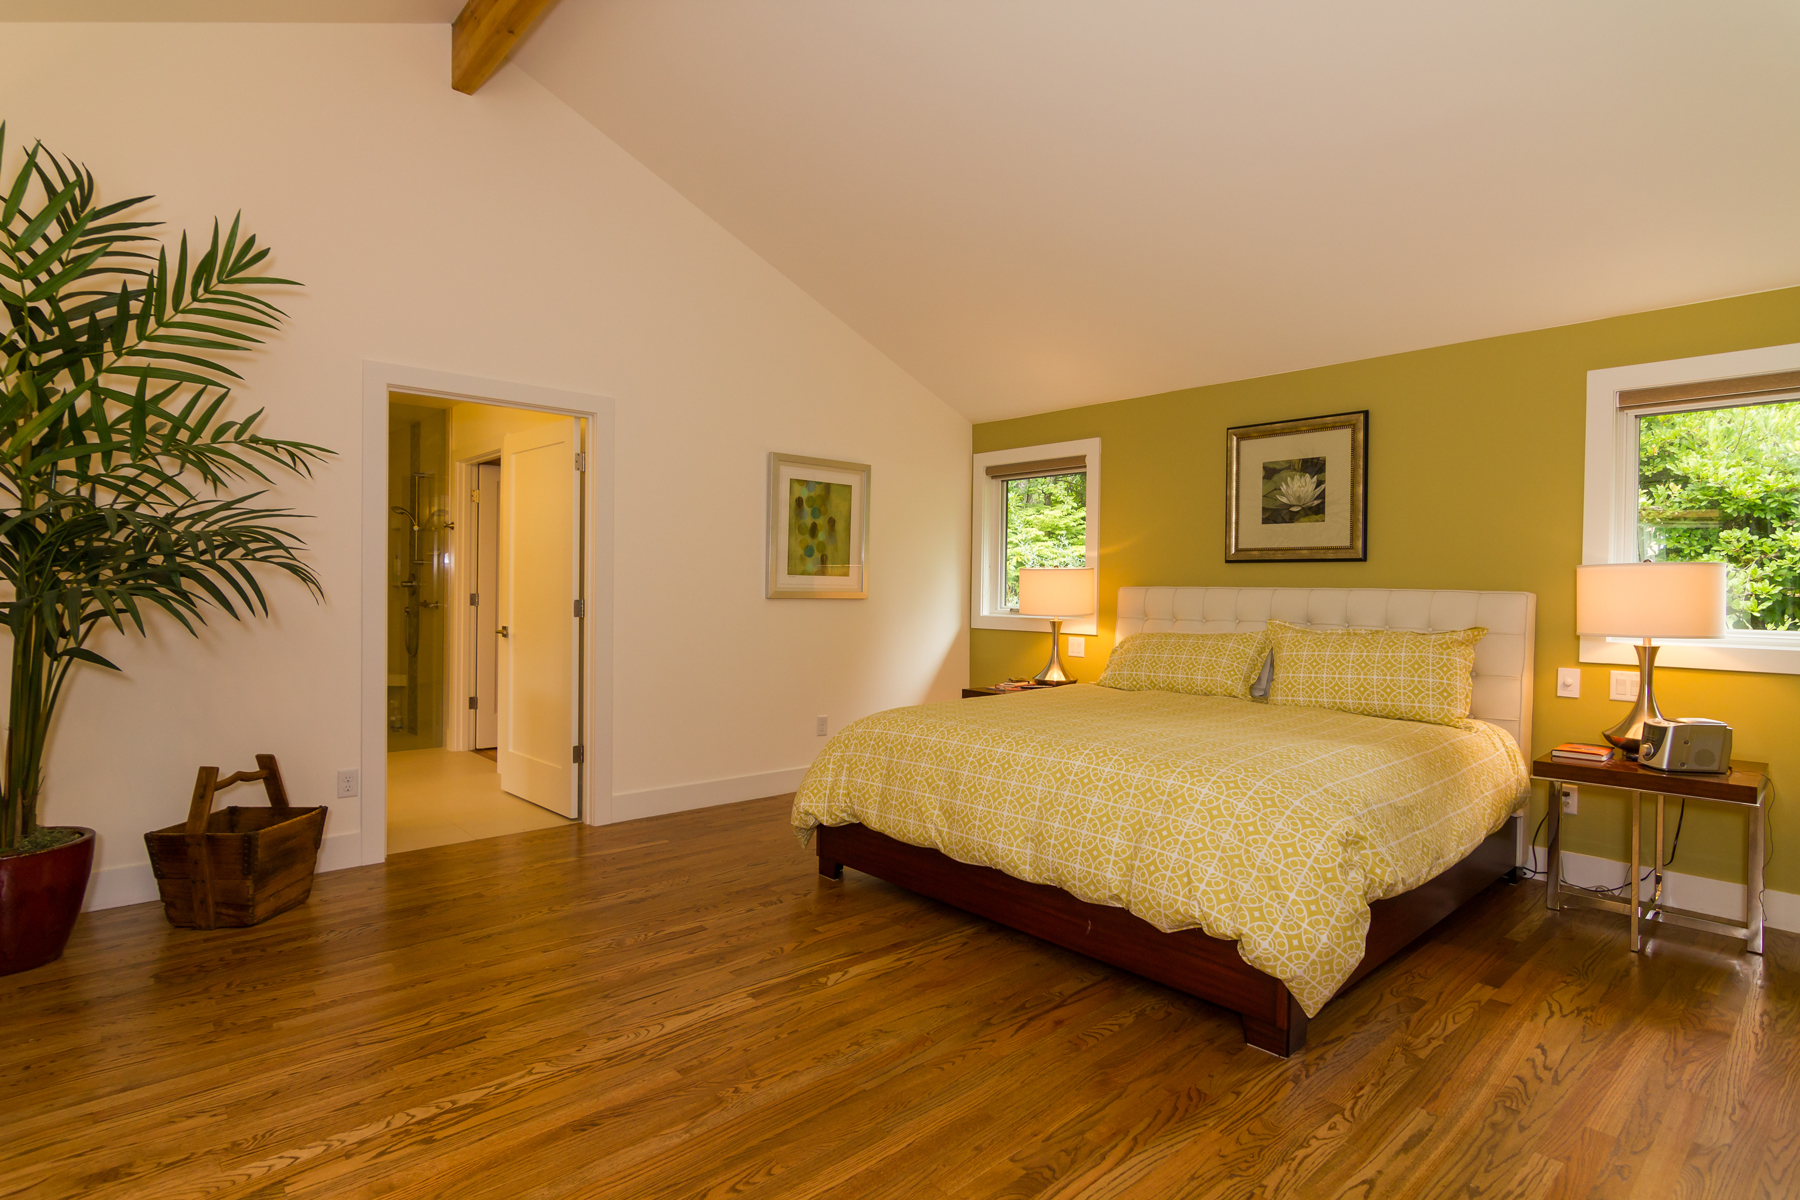 Master bedroom addition. High ceilings follow roofline up to exposed beam.